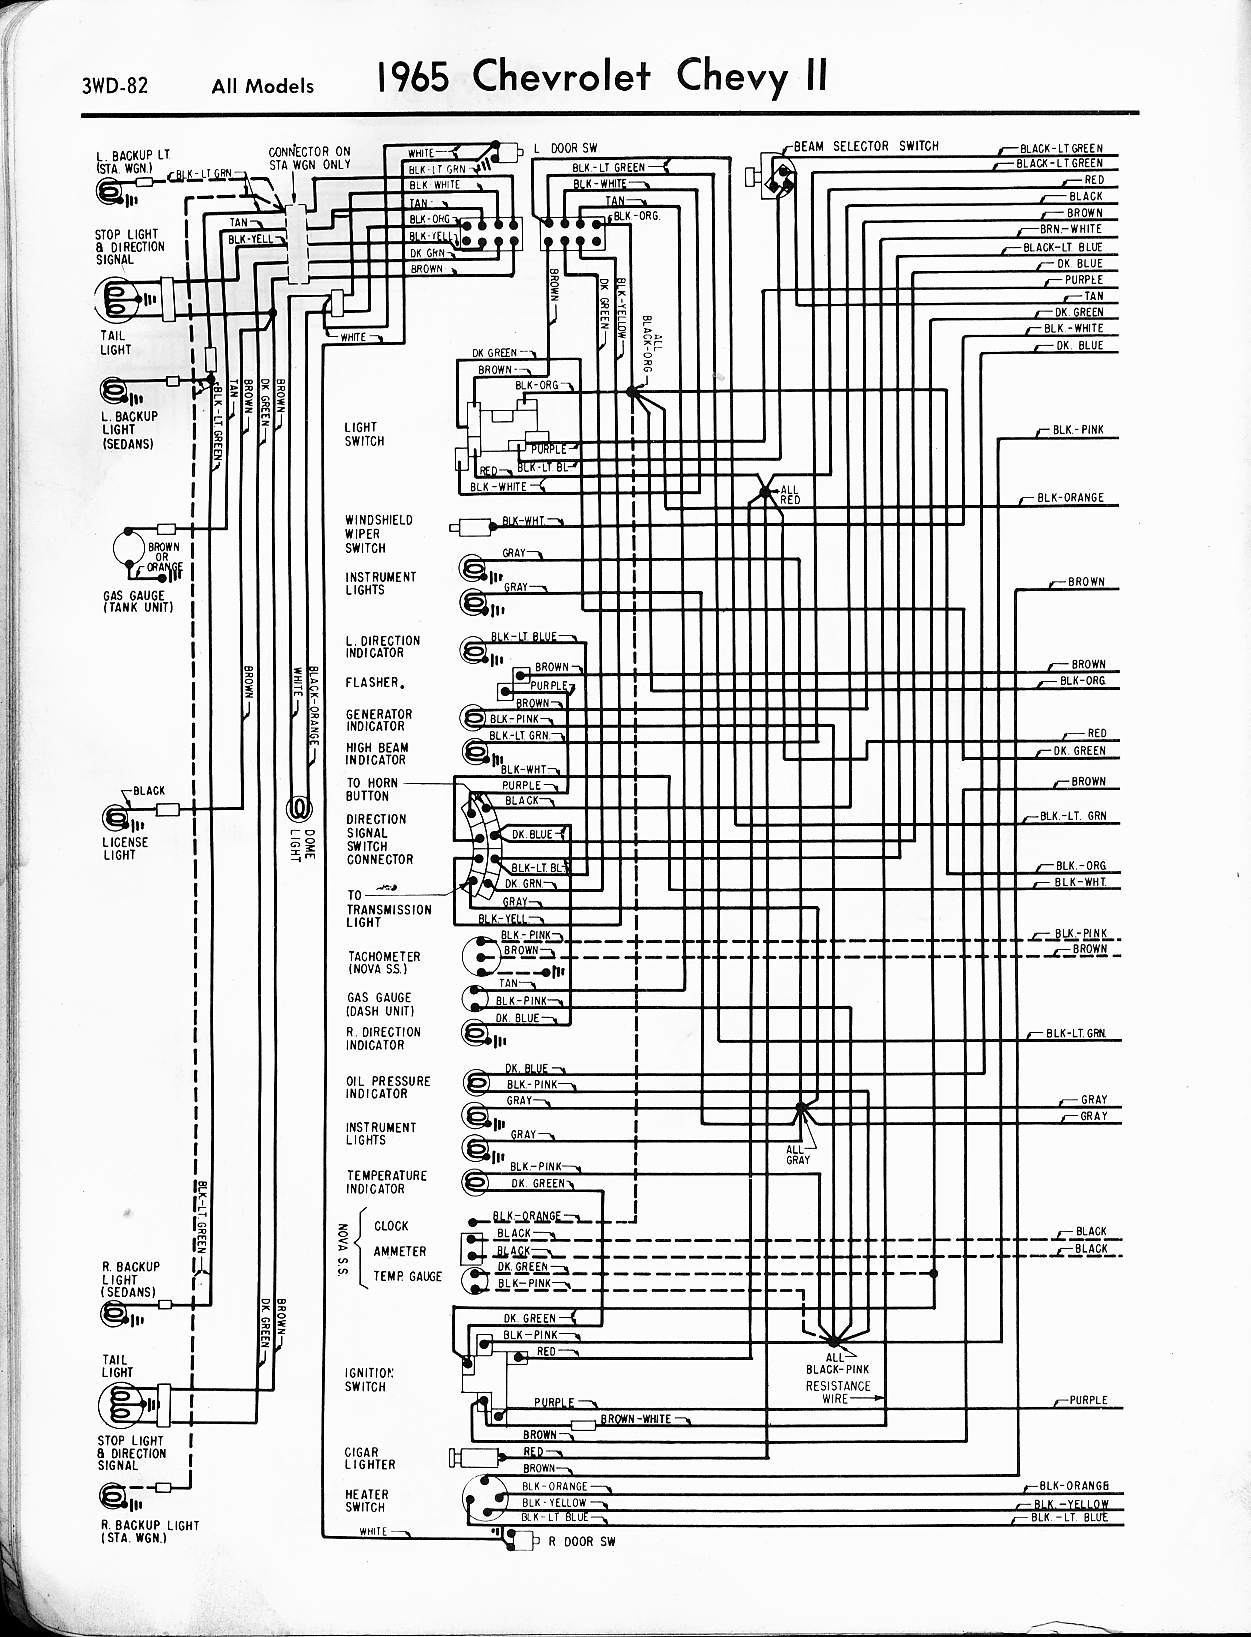 Chevy Tilt Steering Column Wiring Diagram | Wiring Diagram